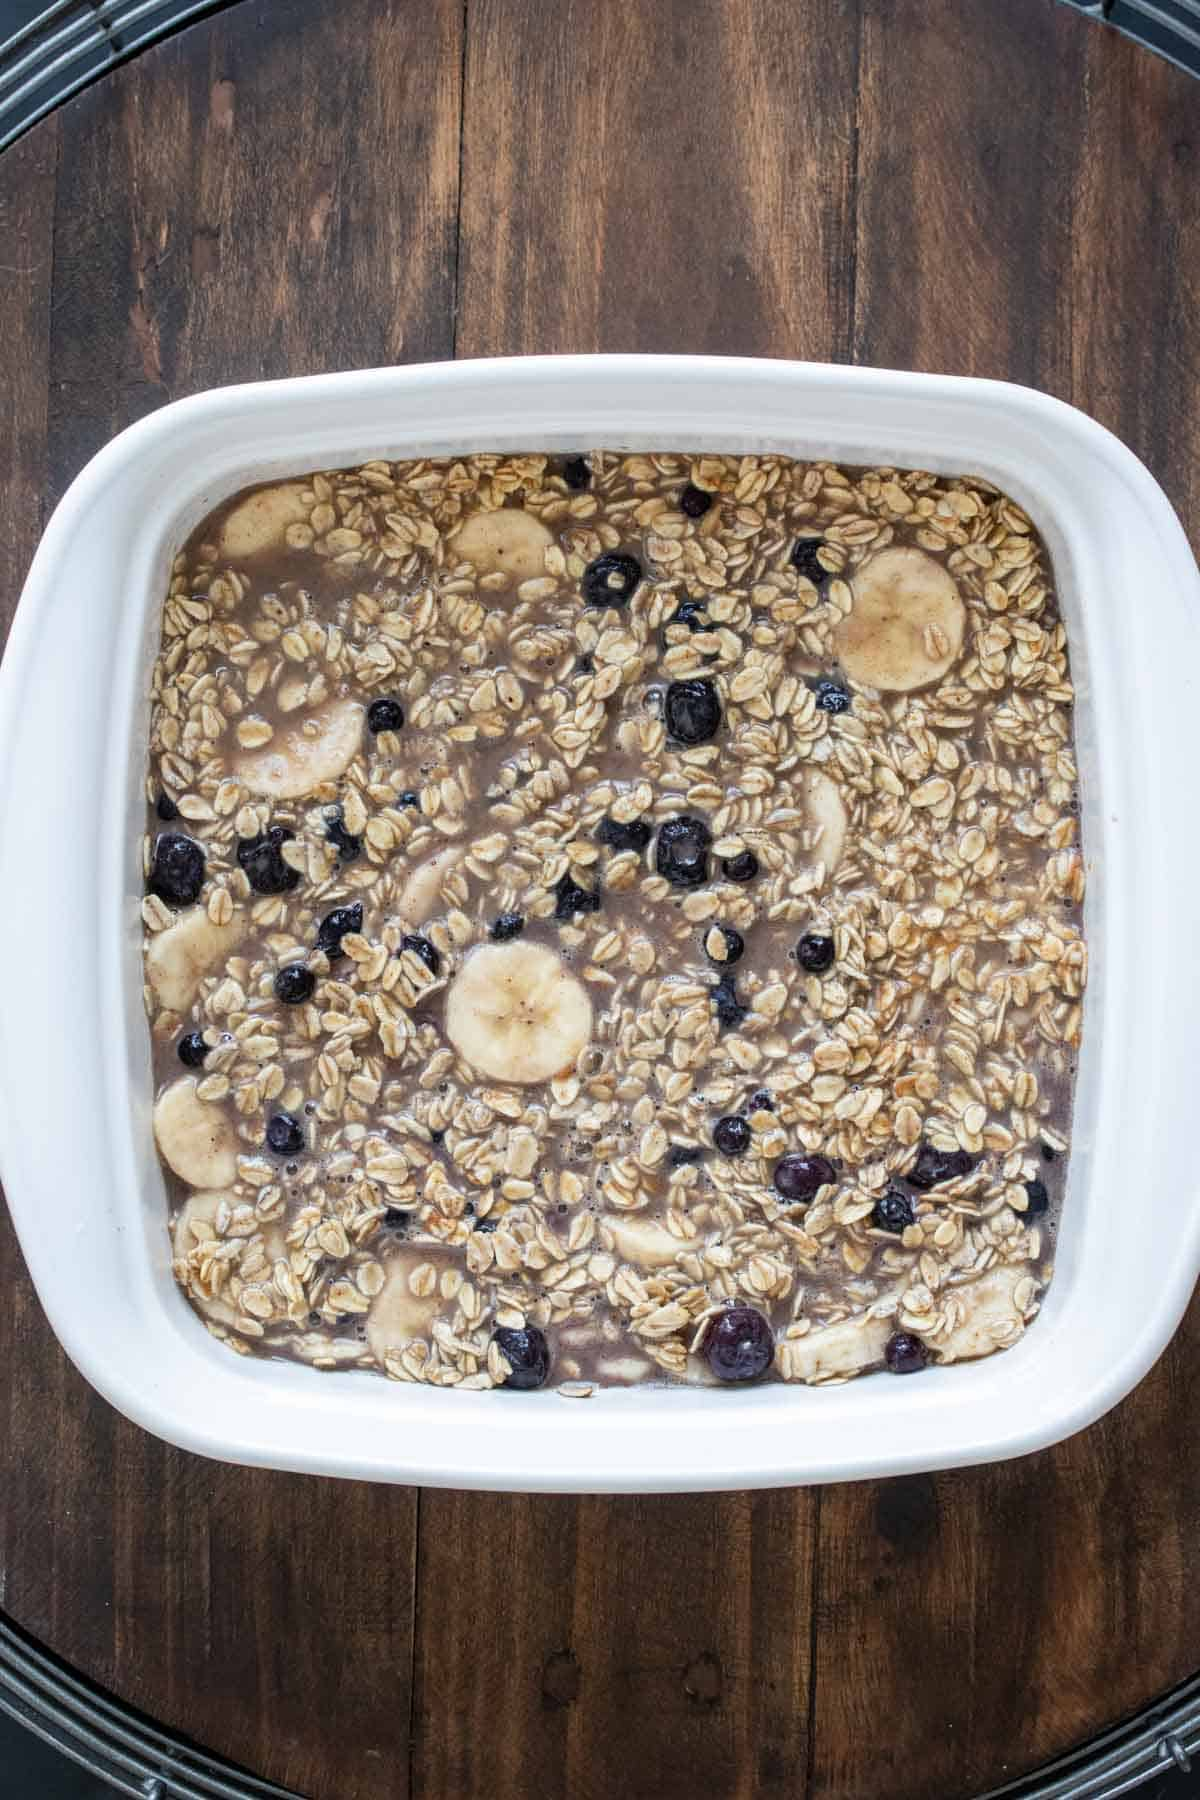 White baking dish filled with uncooked oats mixed with blueberries and banana slices